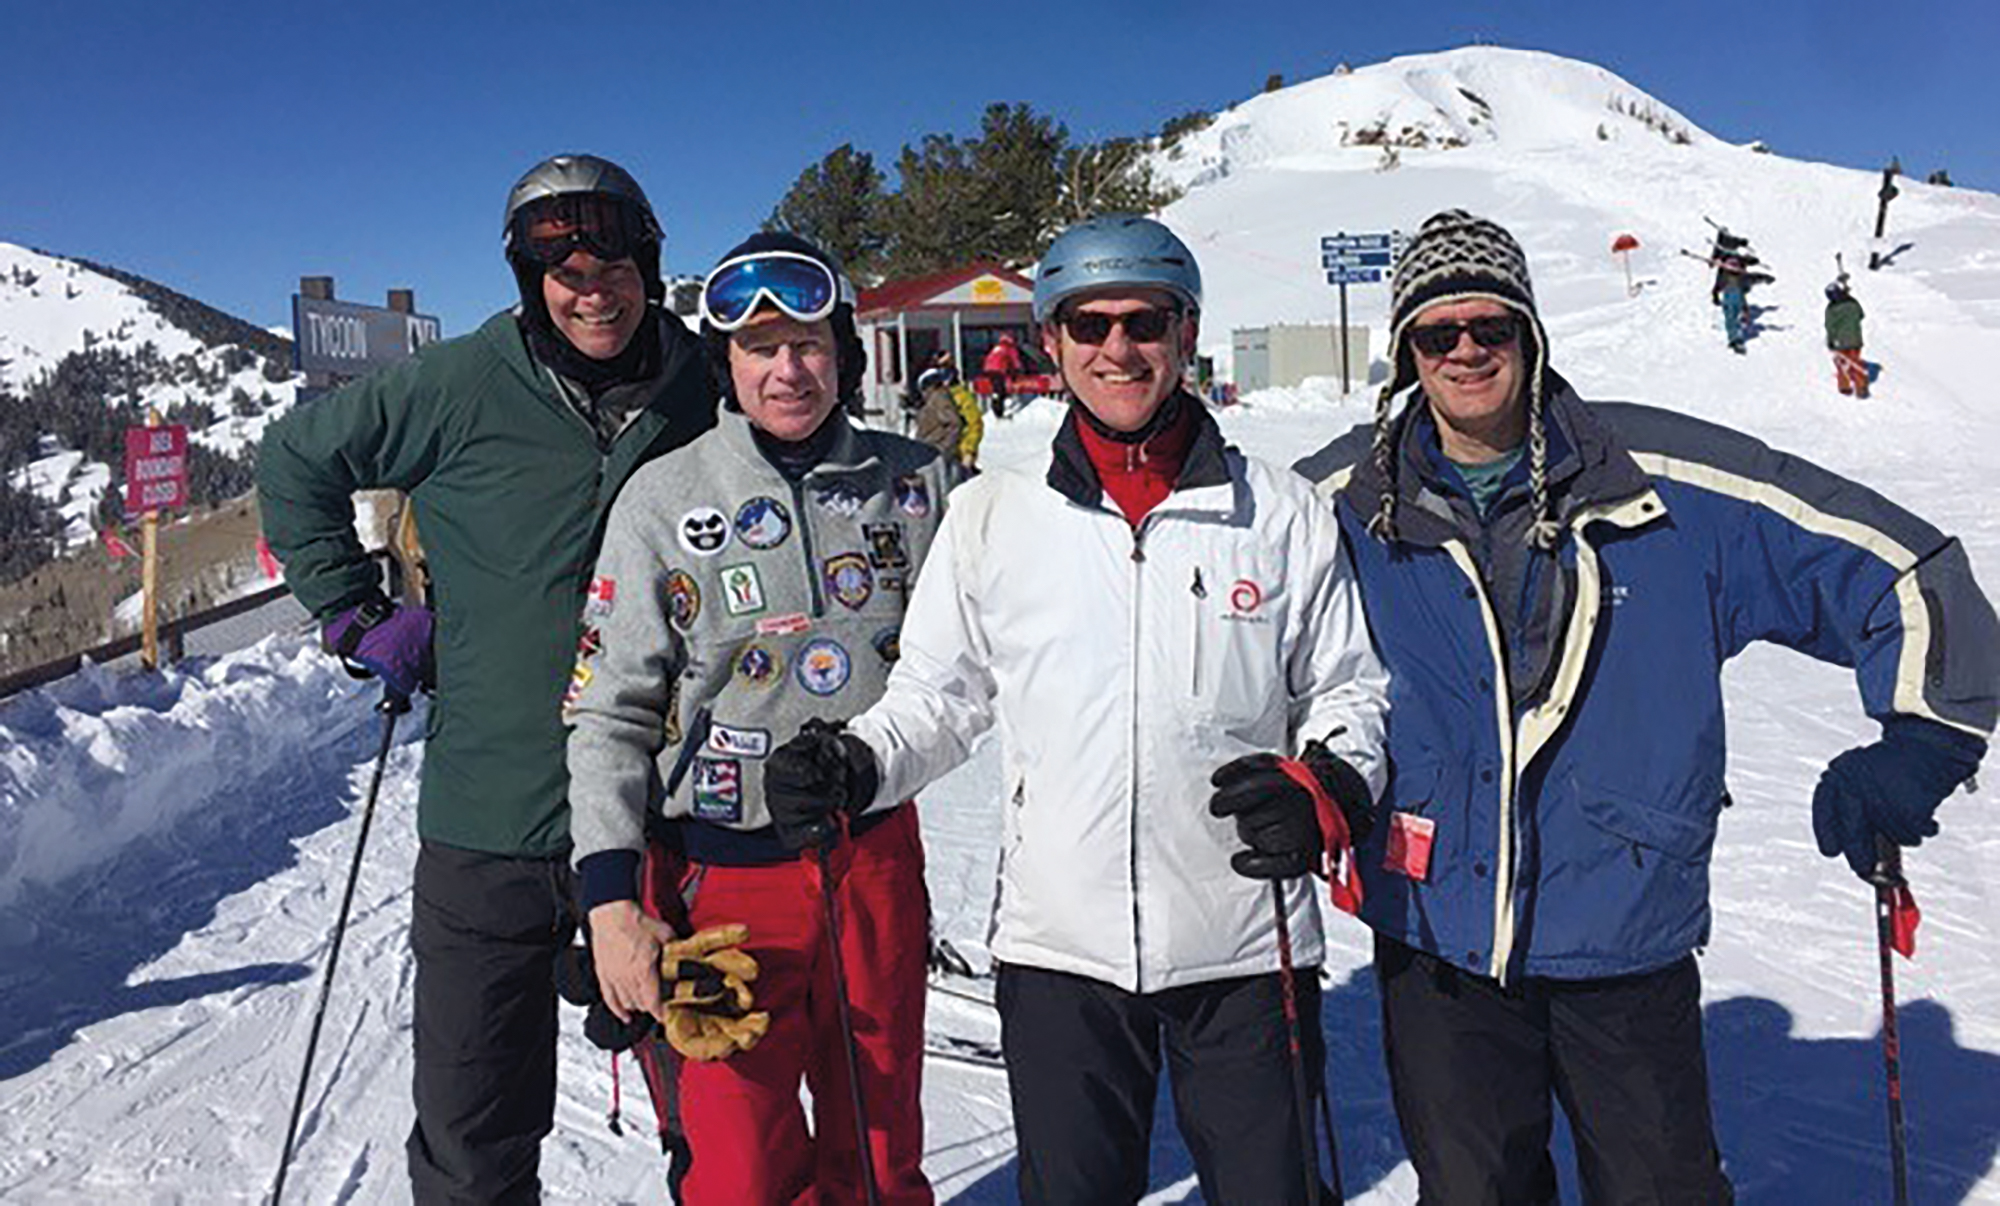 (L. to r.) Keith Pattison '83, Jack Corsello '83, Niki von der Schulenburg '84, and Morris Barrett '83 in Park City, Utah.